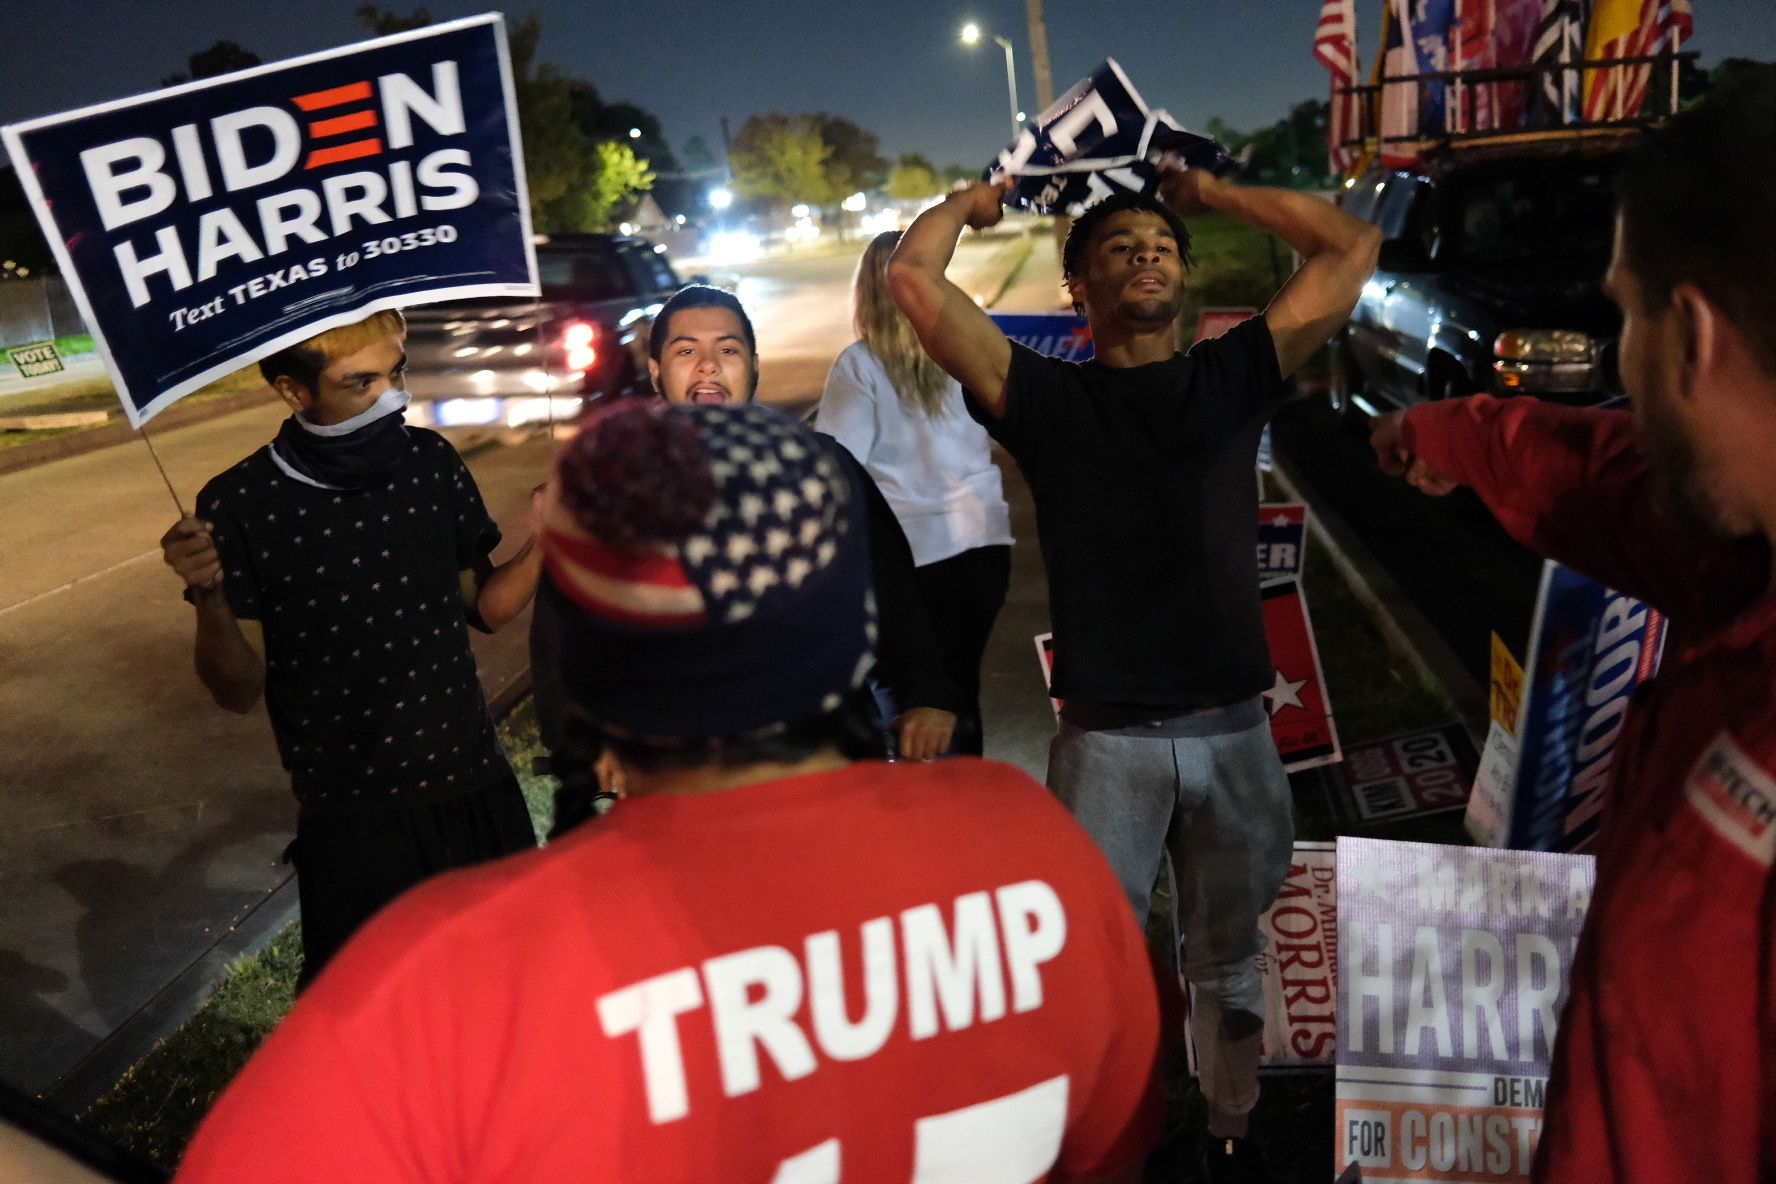 Biden supporters confront Trump loyalists on US election day. Reuters